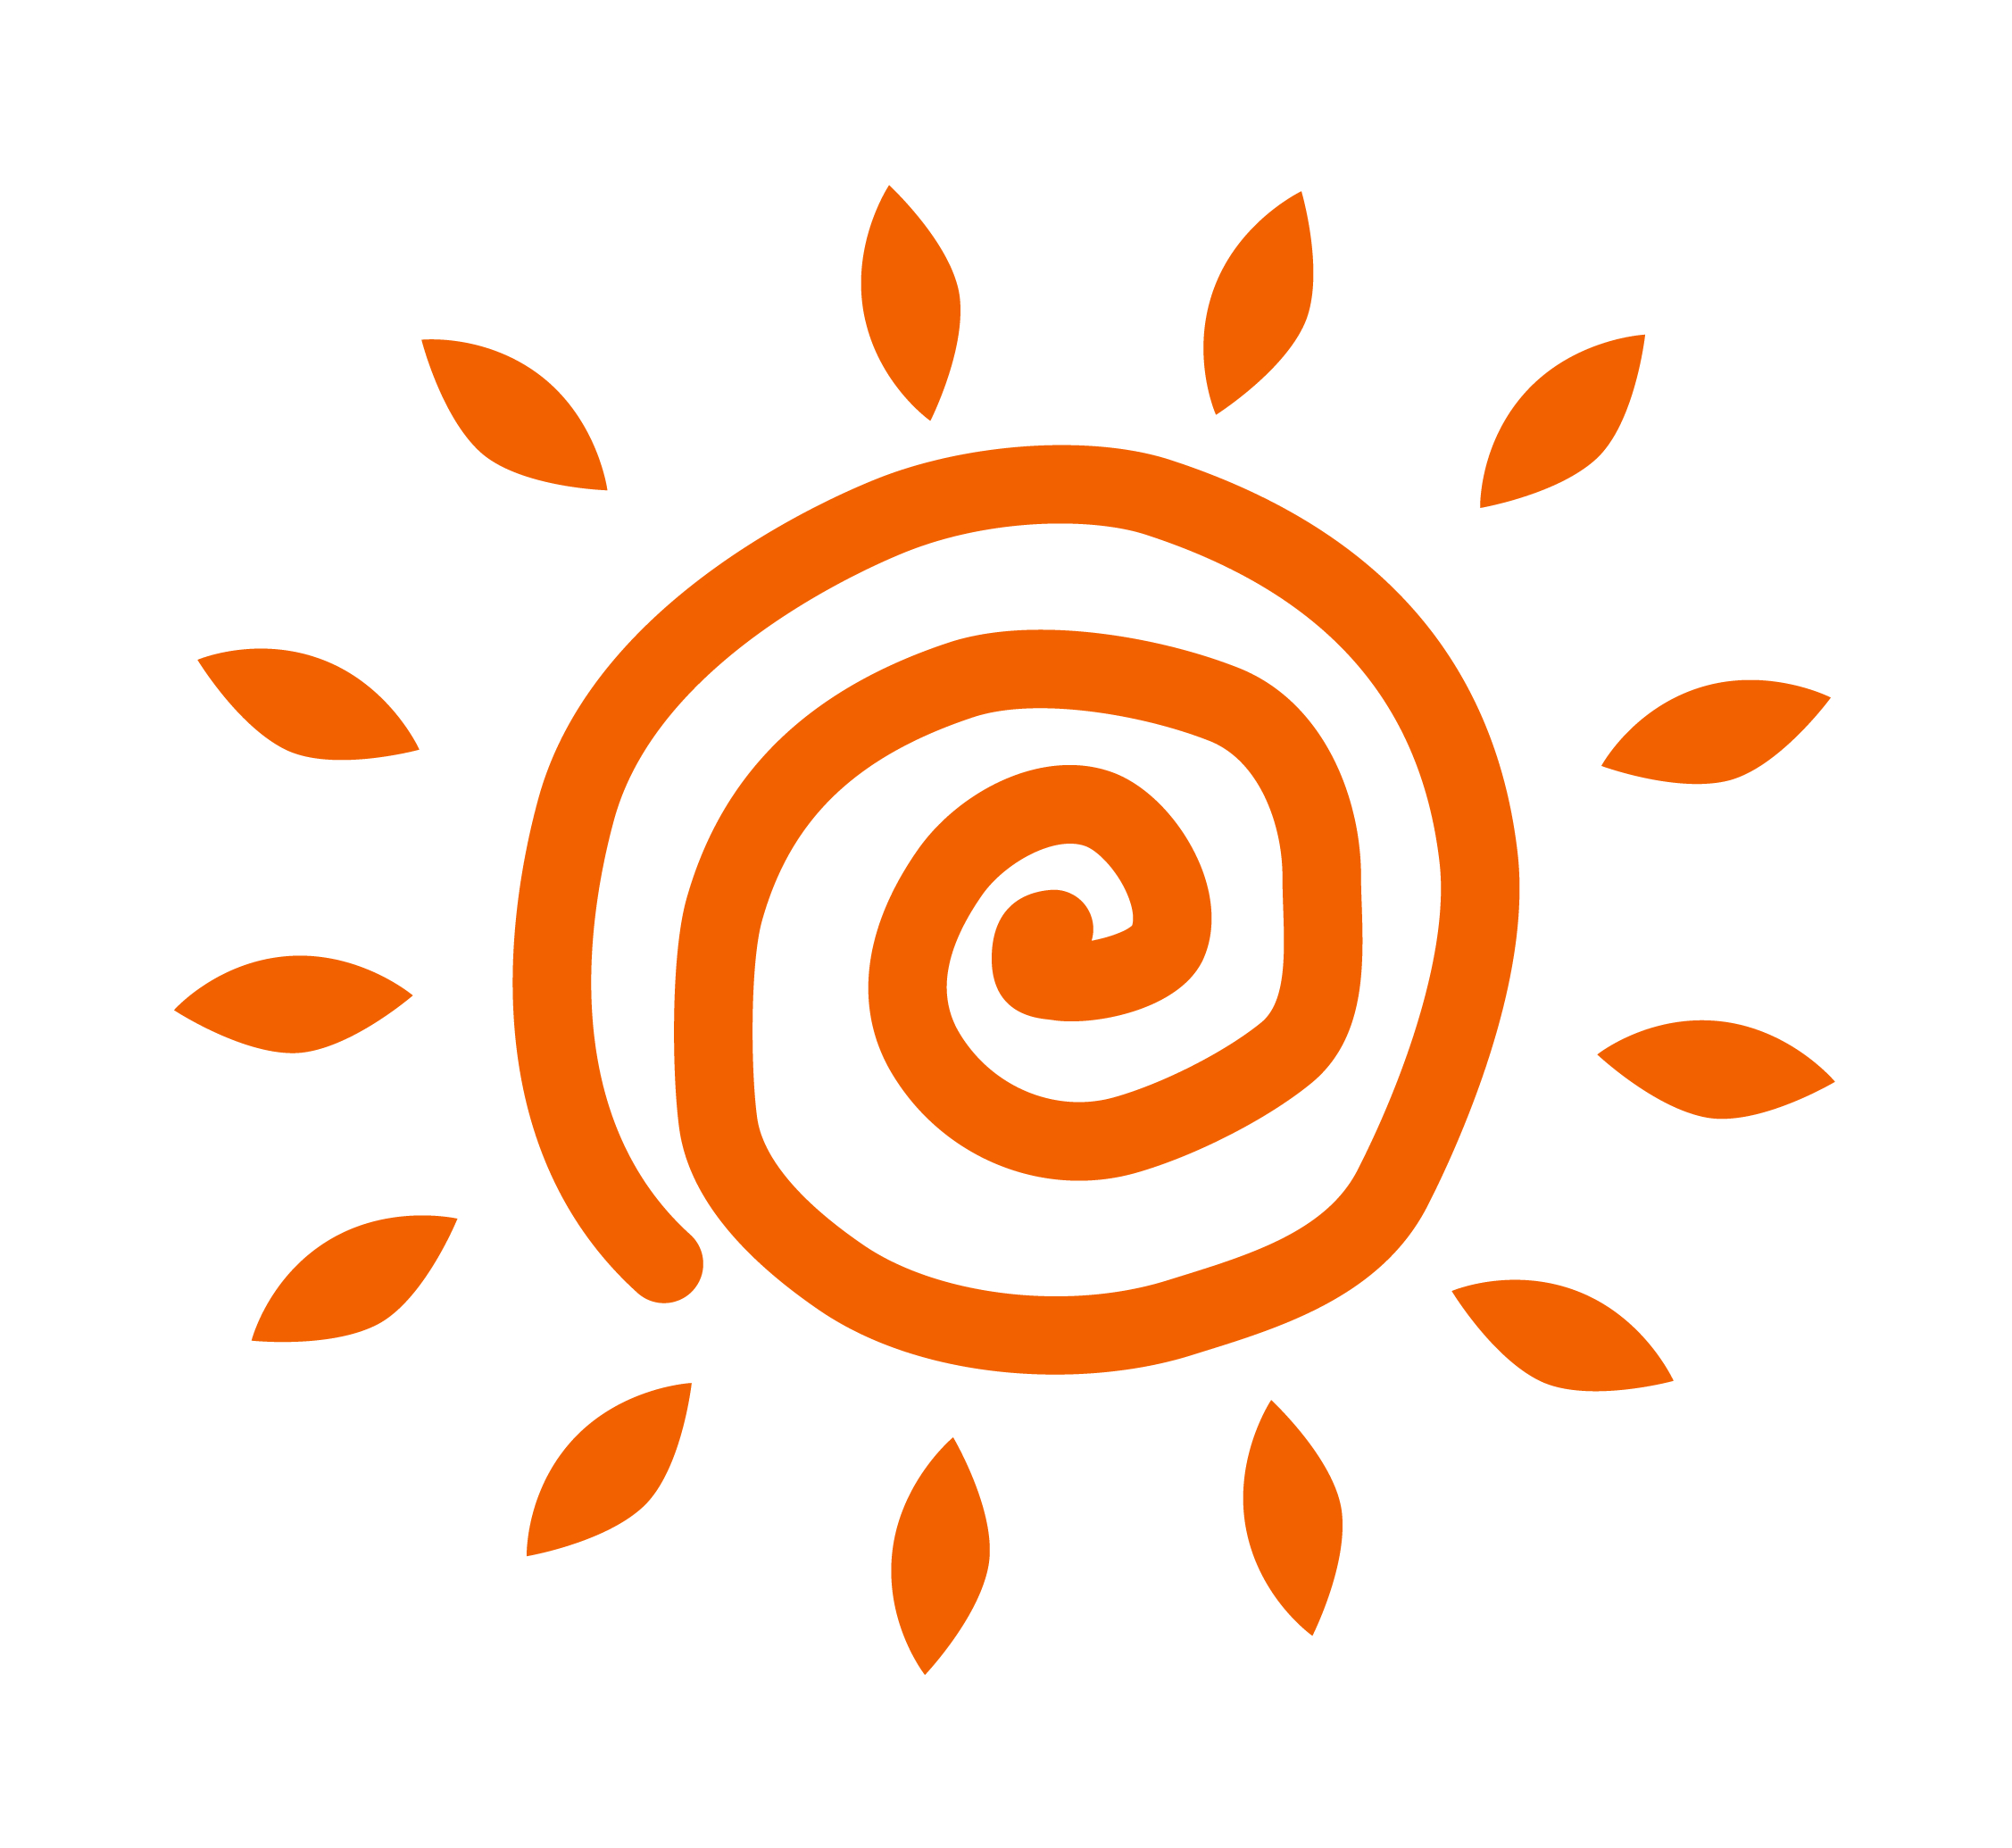 Brand assets african vision of hope print full color sun icon logo white background buycottarizona Images